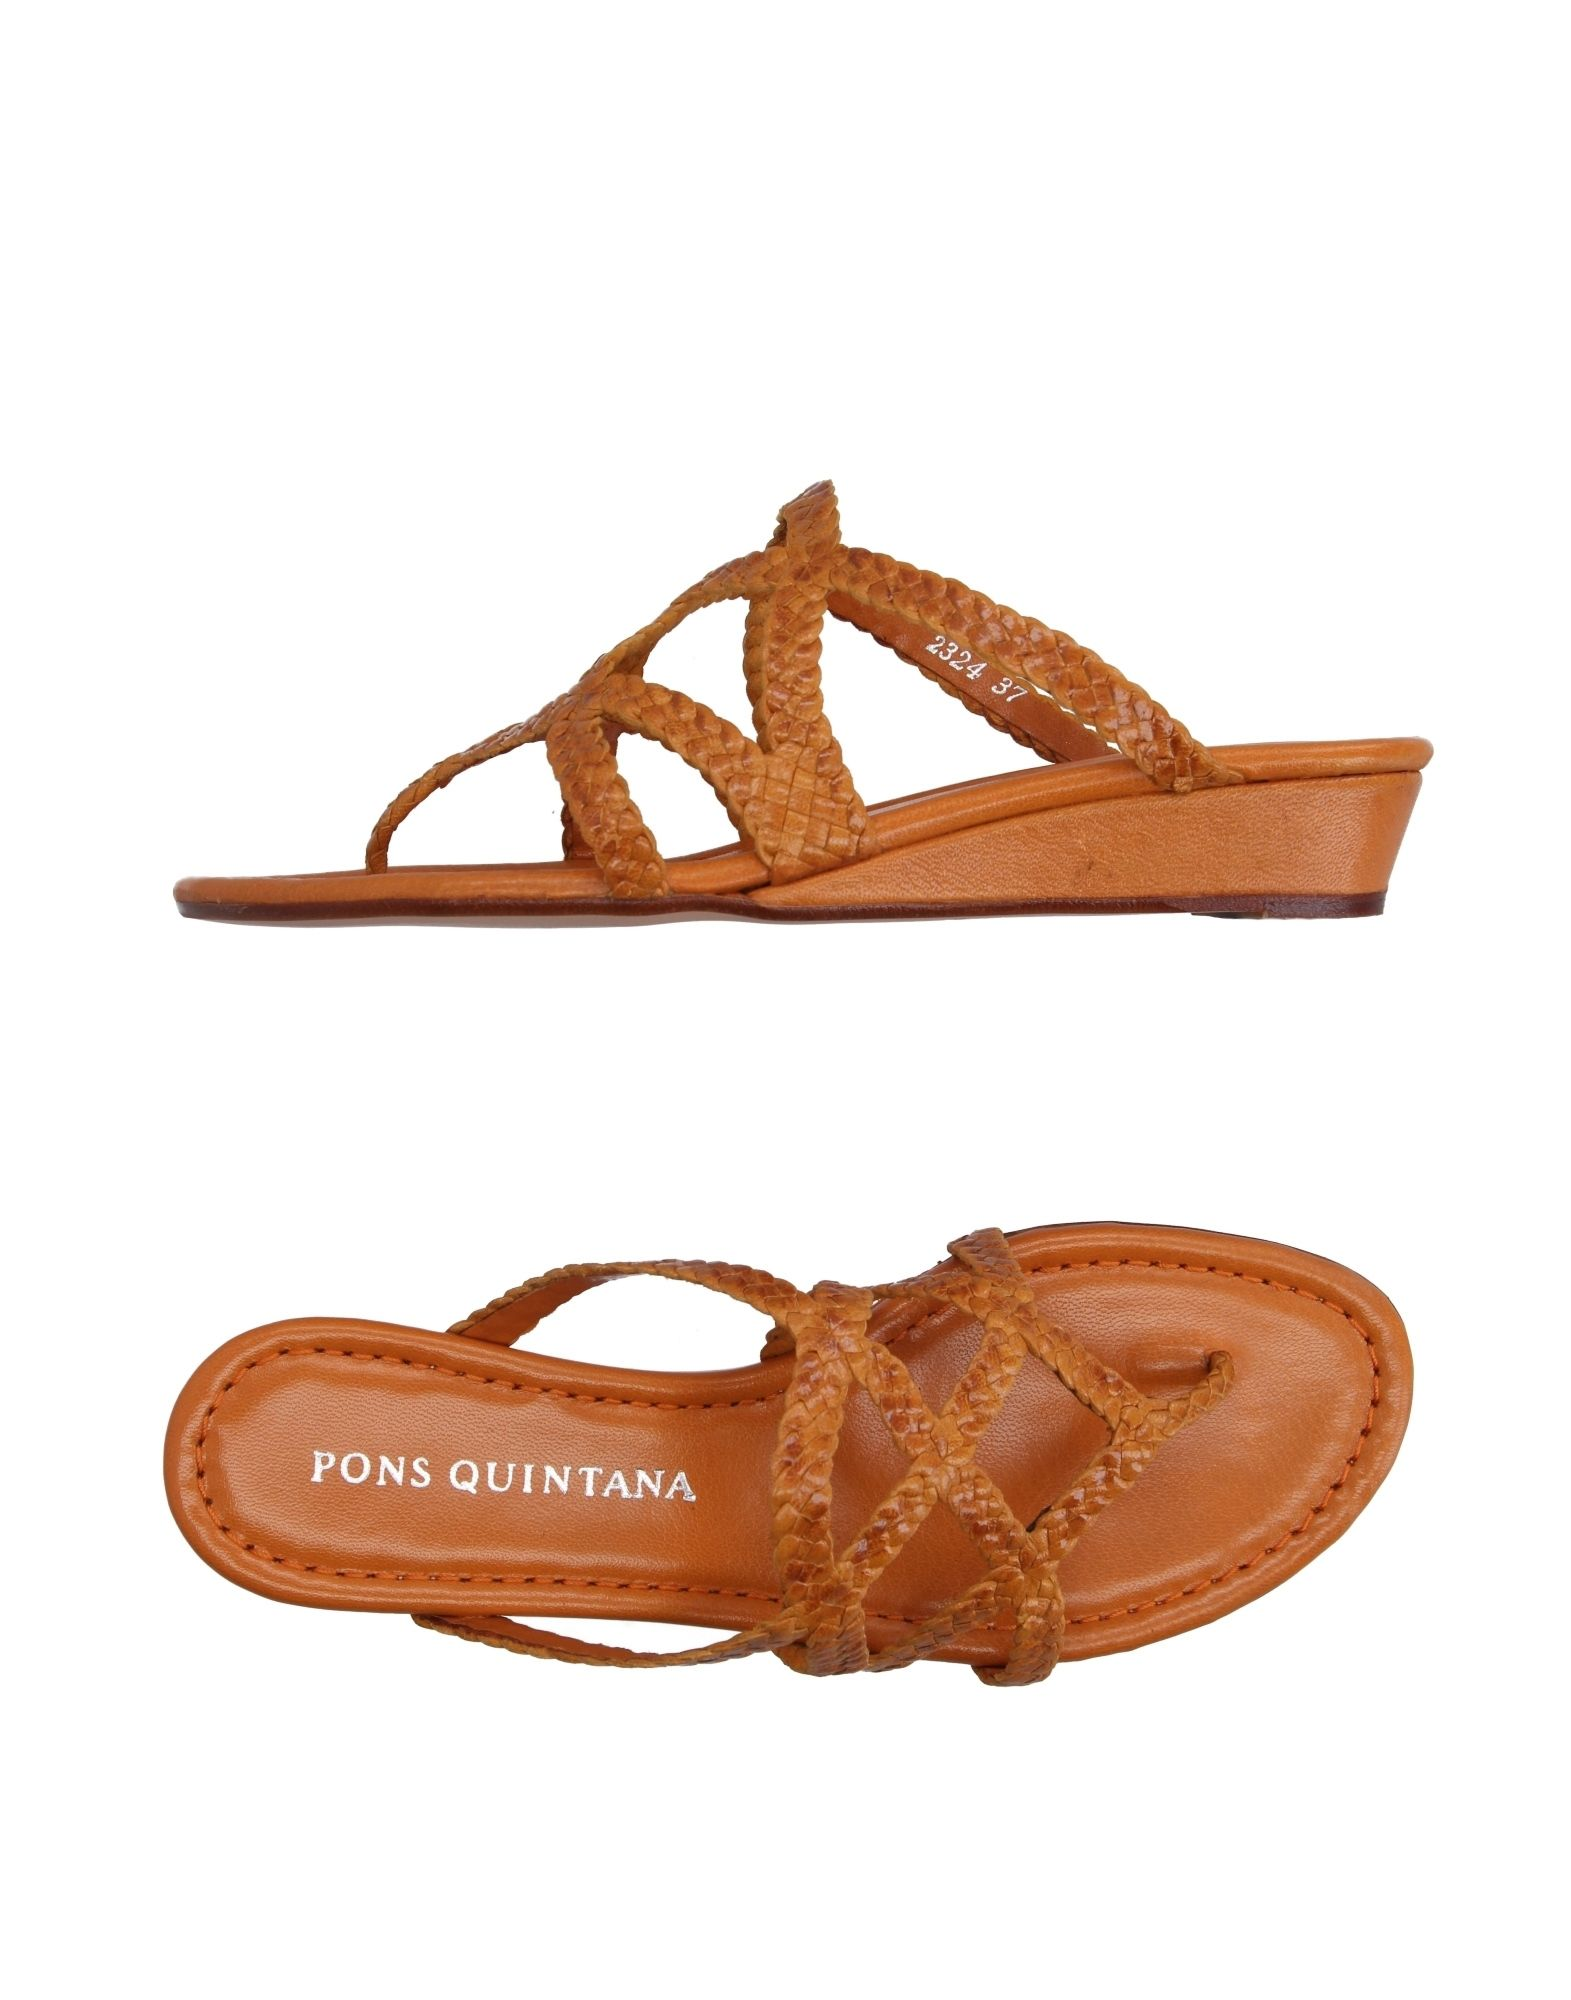 CHAUSSURES - TongsPons Quintana hWB3in